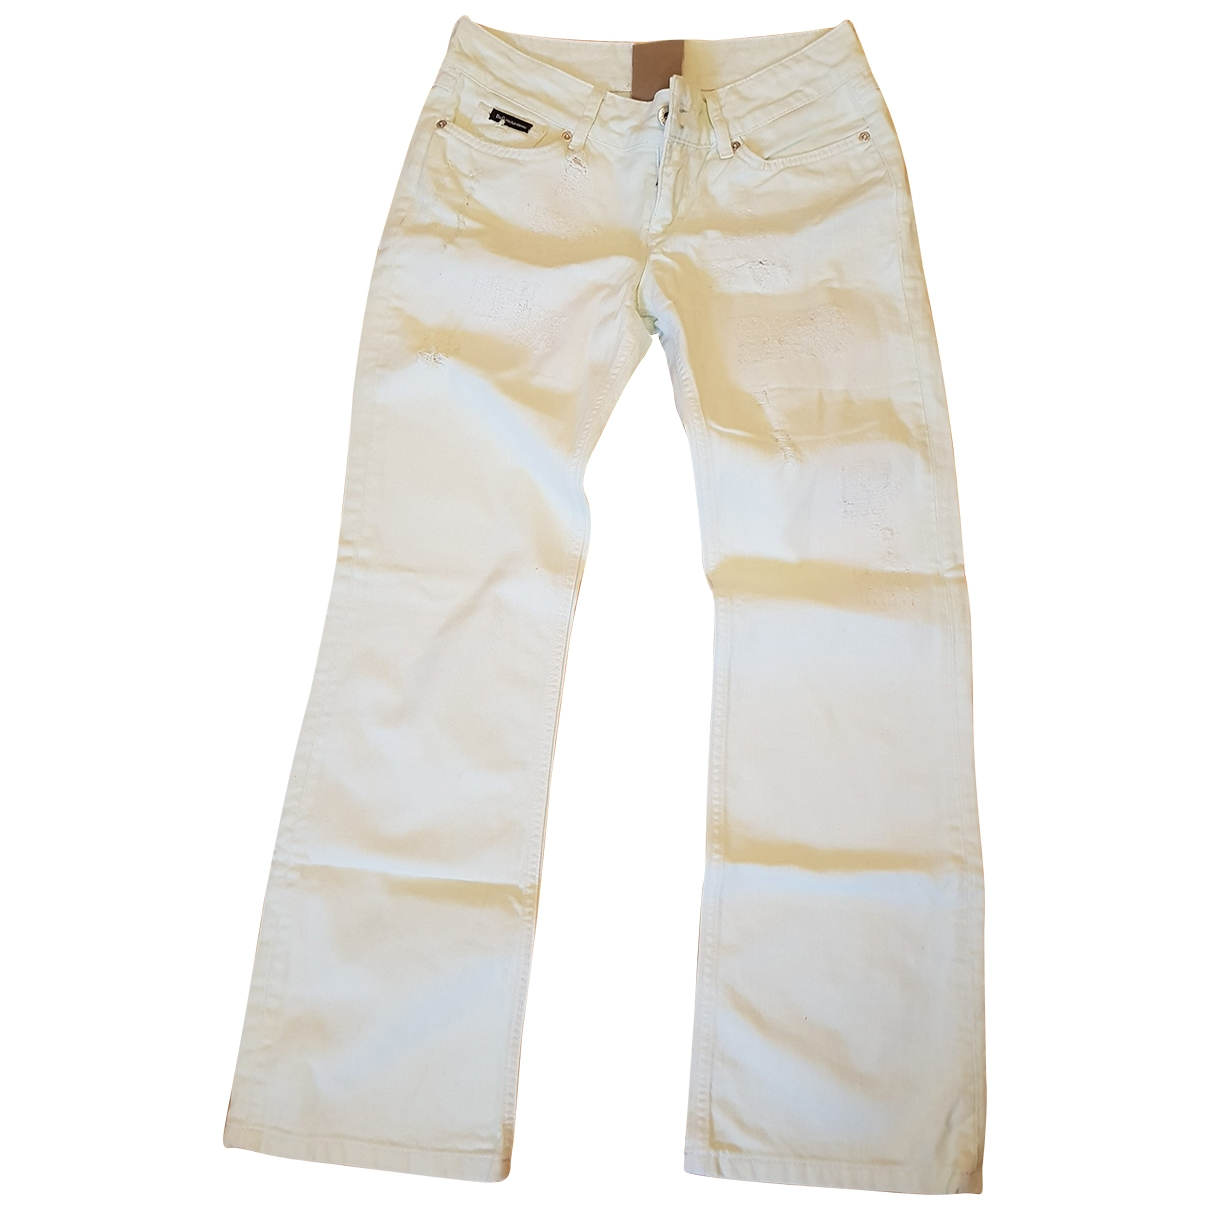 D&g \N Green Cotton Trousers for Women One Size International